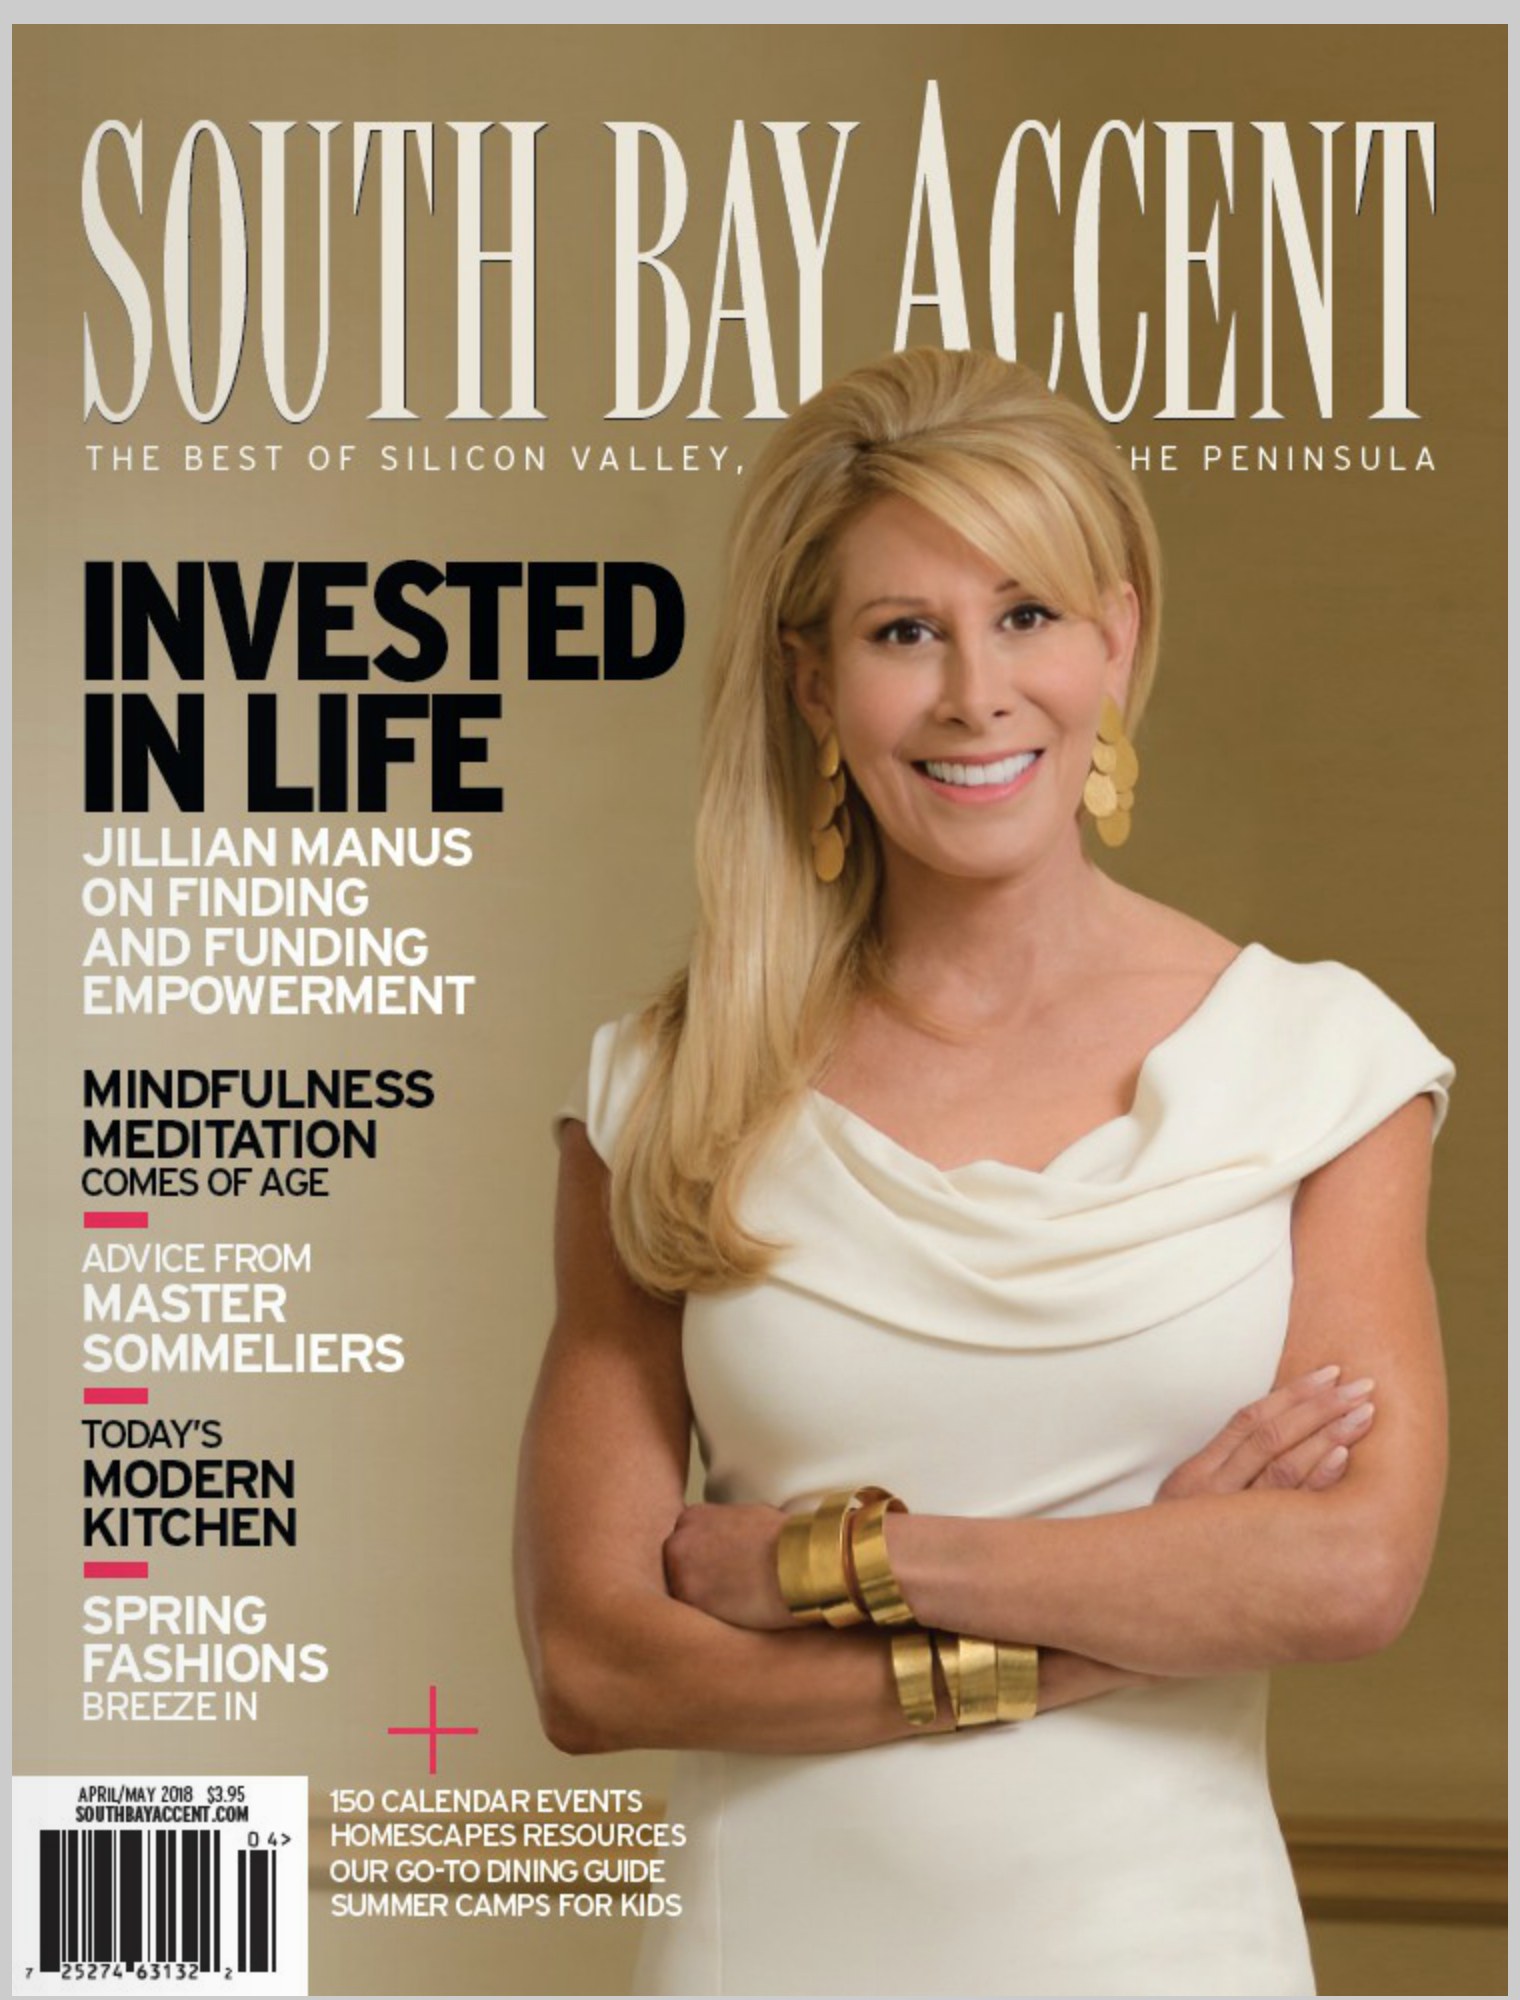 Southbay accent cover